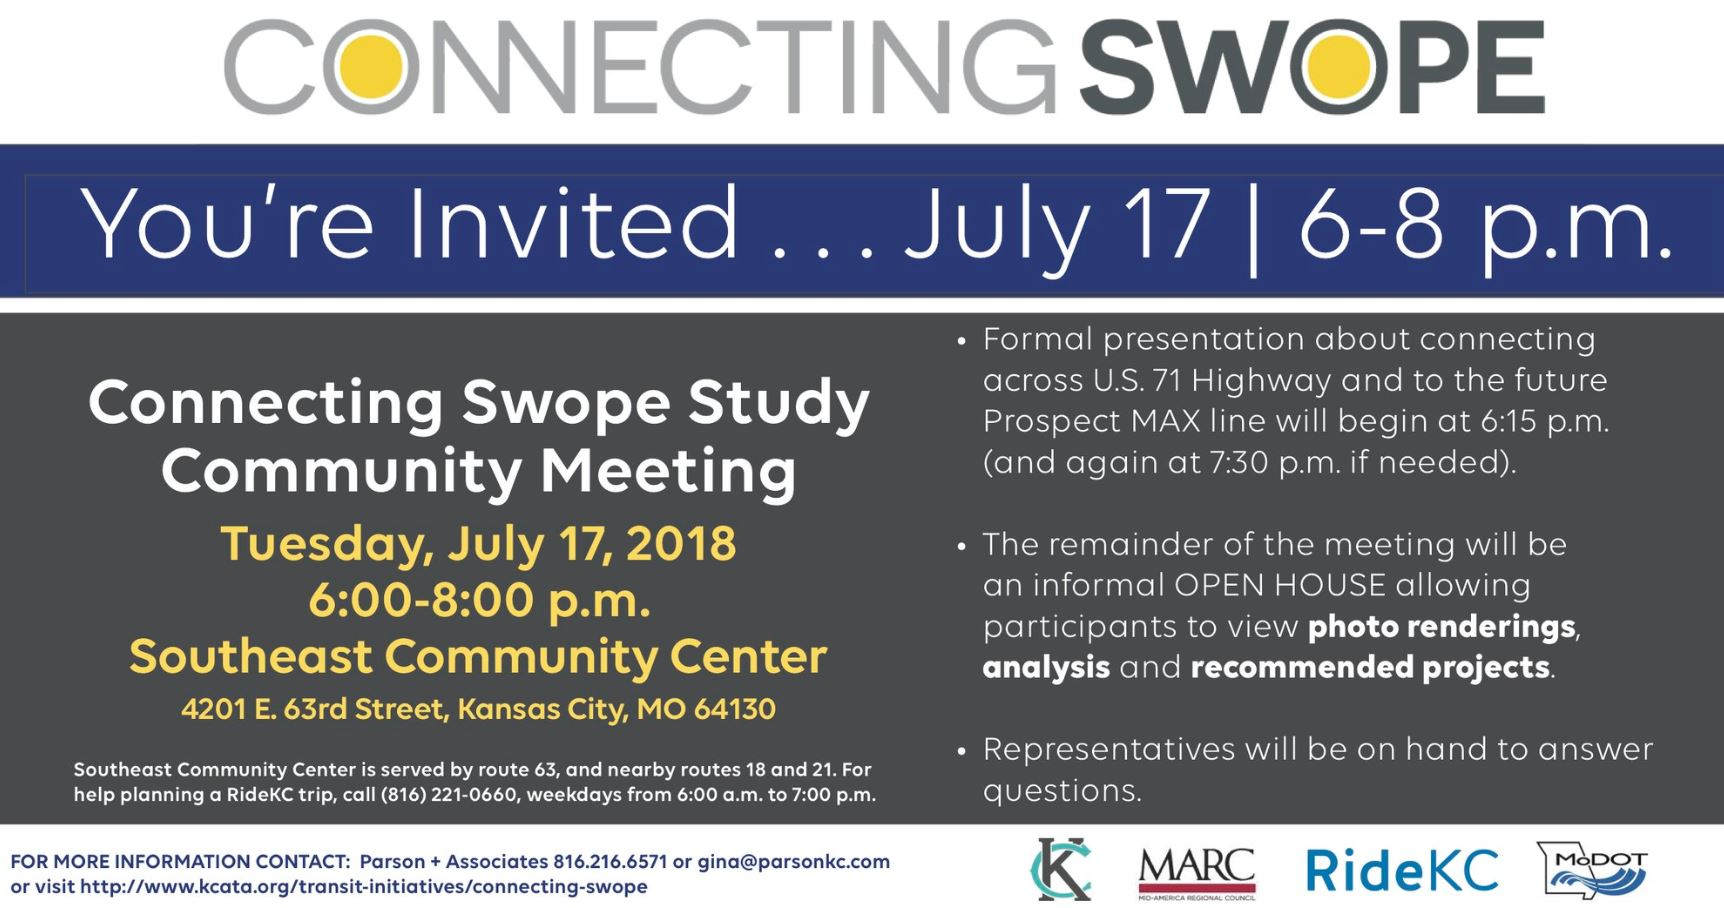 Kansas City MO On Twitter TOMORROW Join KCMO MARCKCMetro RideKCTransit And MoDOT KC At A Community Meeting To Discuss The Connecting Swope